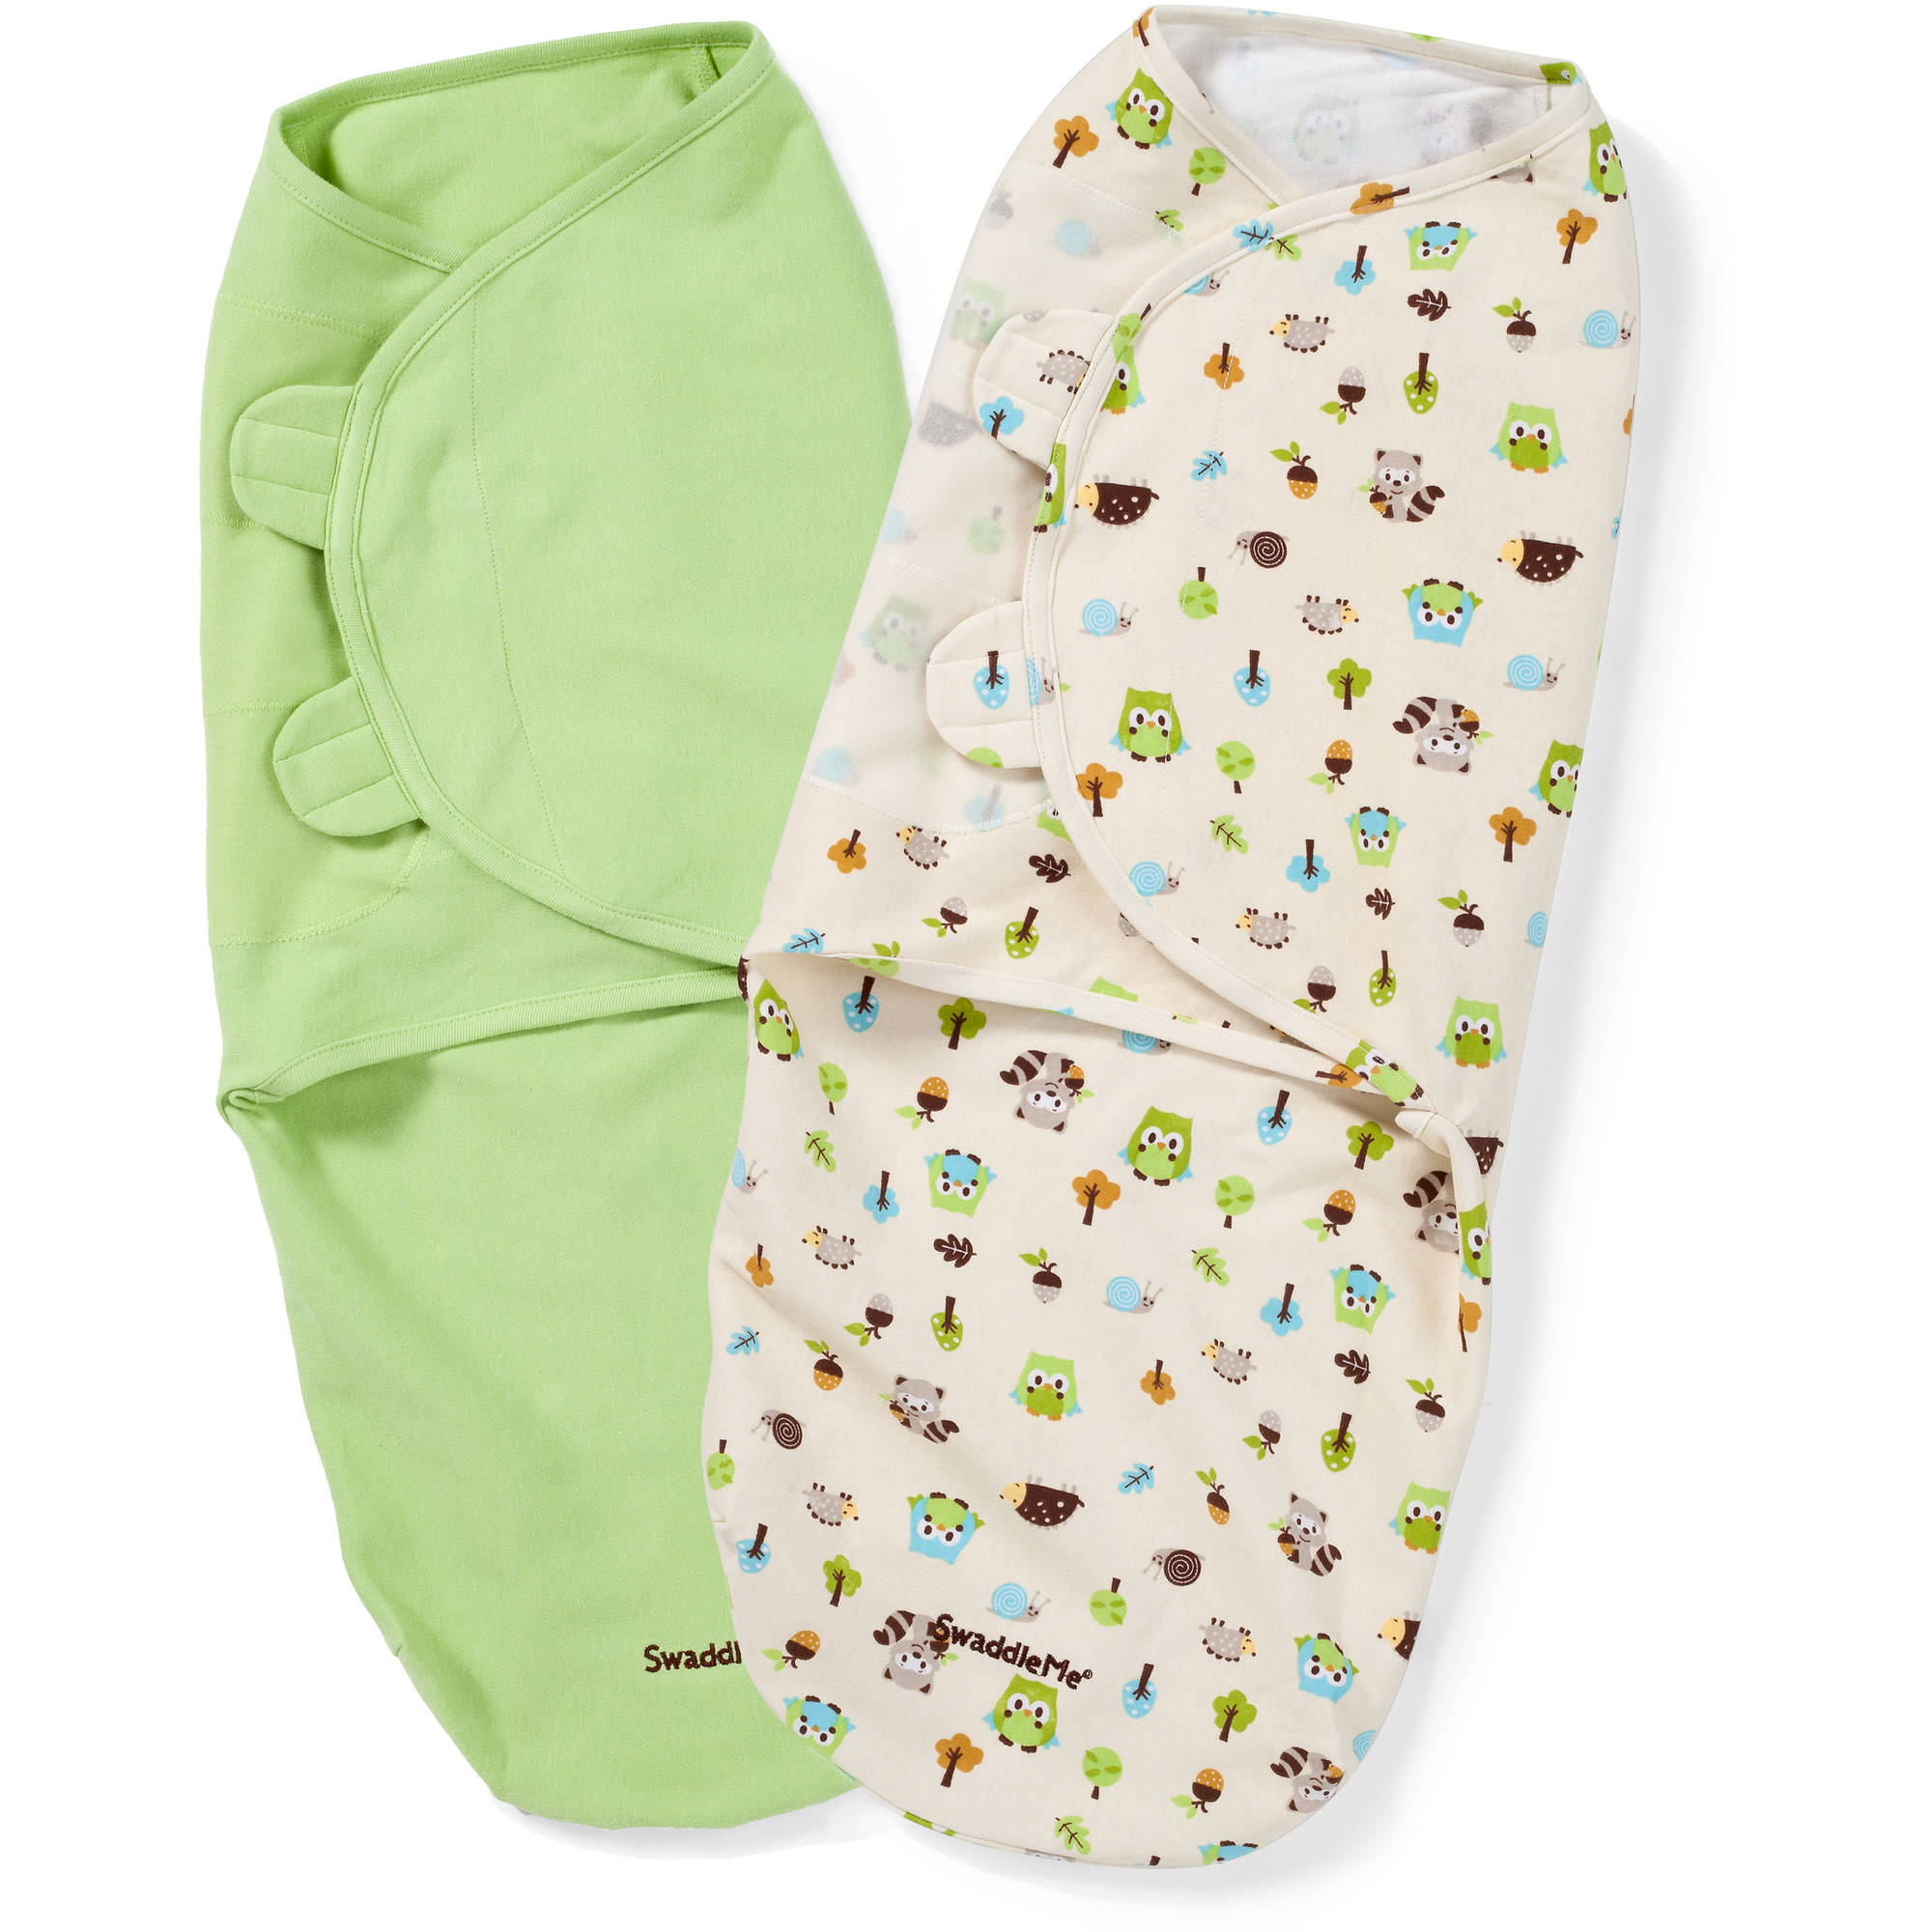 SwaddleMe Original Swaddle, 2-Pack, Woodland Friends, Large